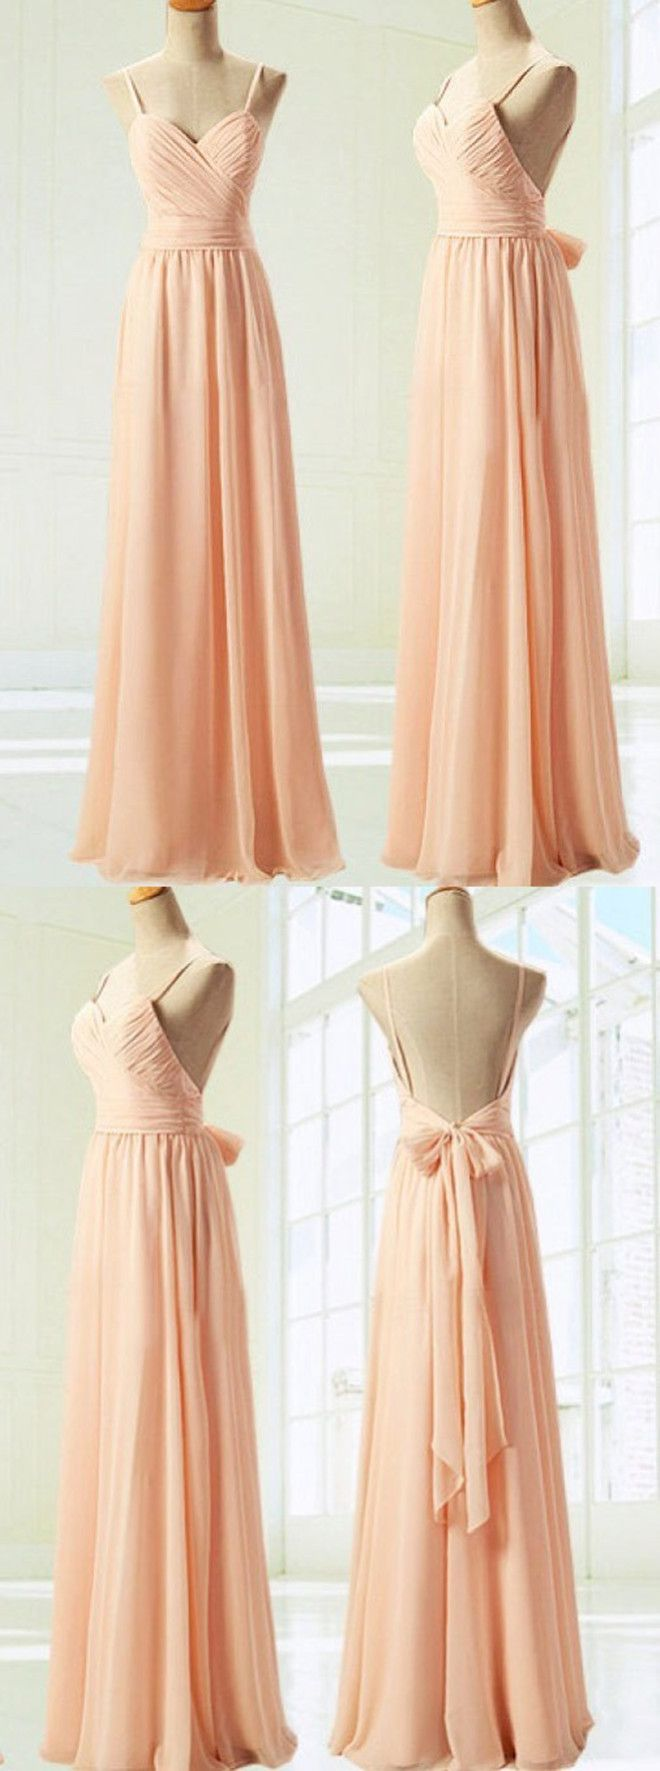 long bridesmaid dresses,backless bridesmaid dresses,chiffon bridesmaid dresses,wedding party dresses @simpledress2480